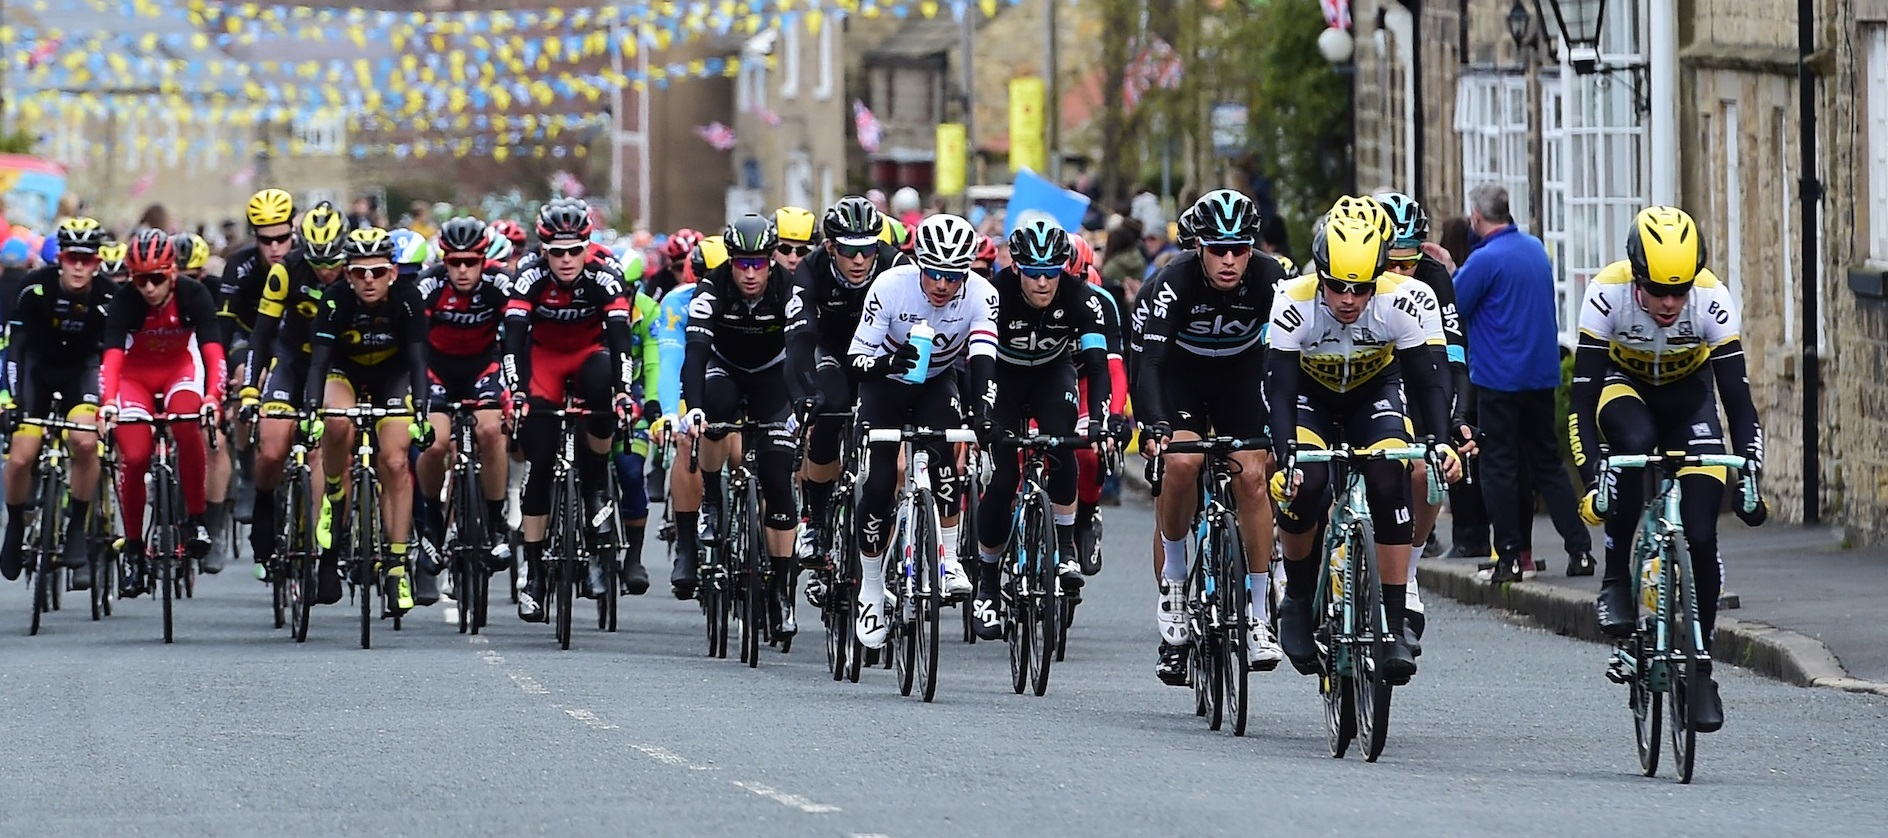 BACK IN THE SADDLE FOR TOUR DE YORKSHIRE